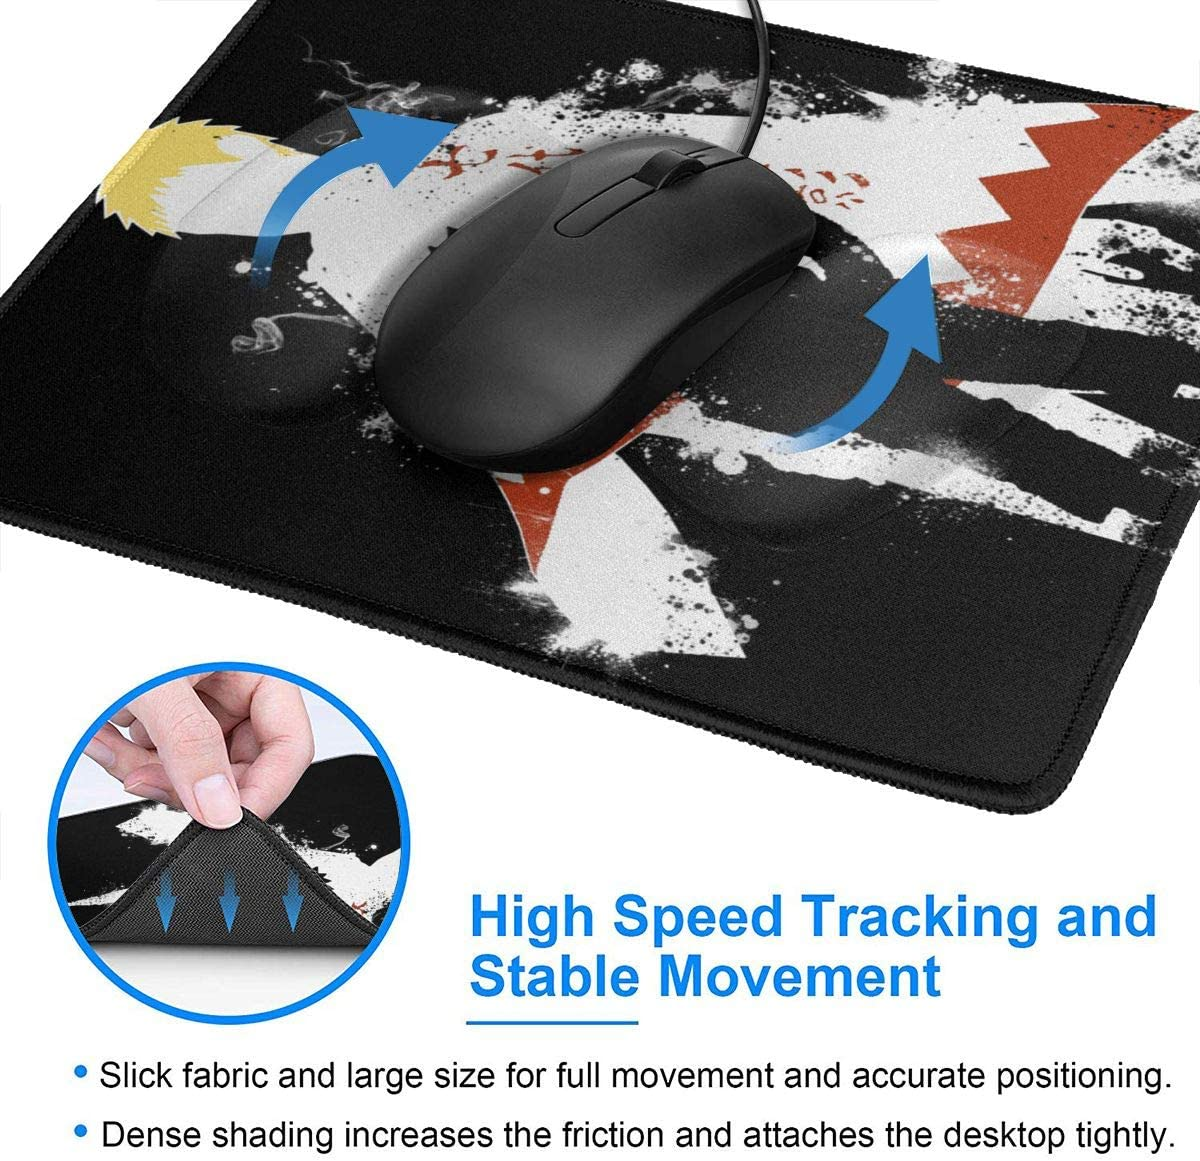 Fullmetal Alchemist Alchemy Mouse Pad Non Slip Gaming Mouse Pad with Stitched Edge Computer PC Mousepad Neoprene Base for Office Home